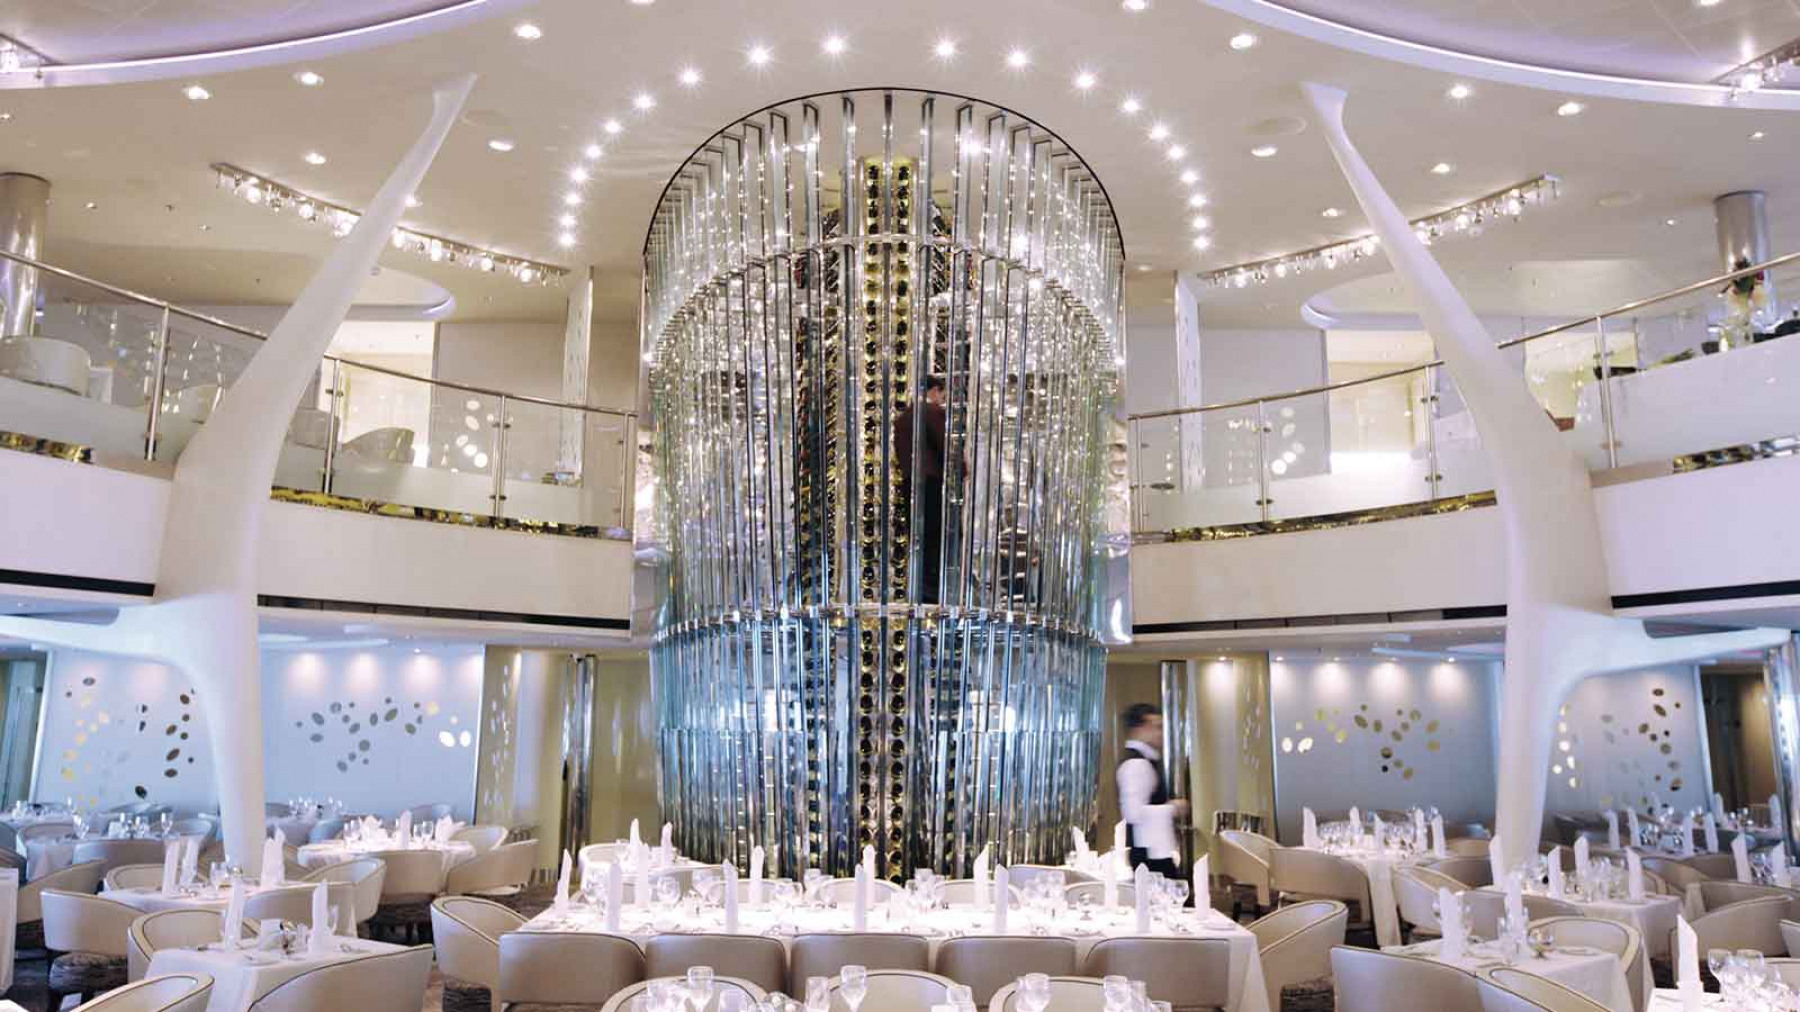 Celebrity Infinity Main dining room.jpg